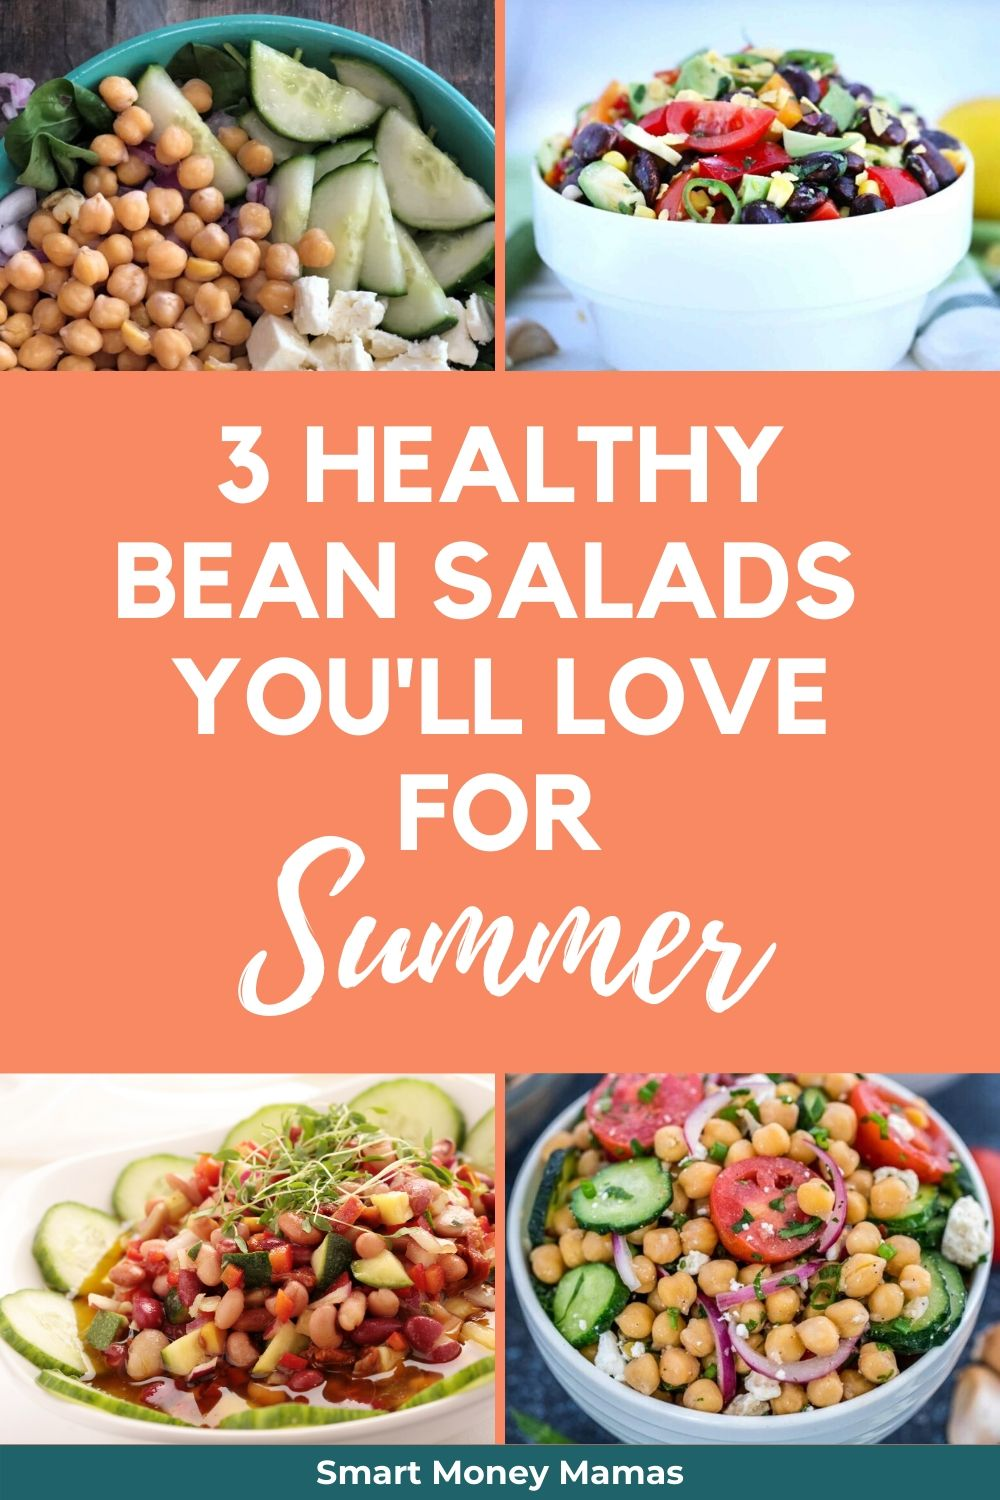 3 Healthy Bean Salads You'll Love for Summer with images of bean salads